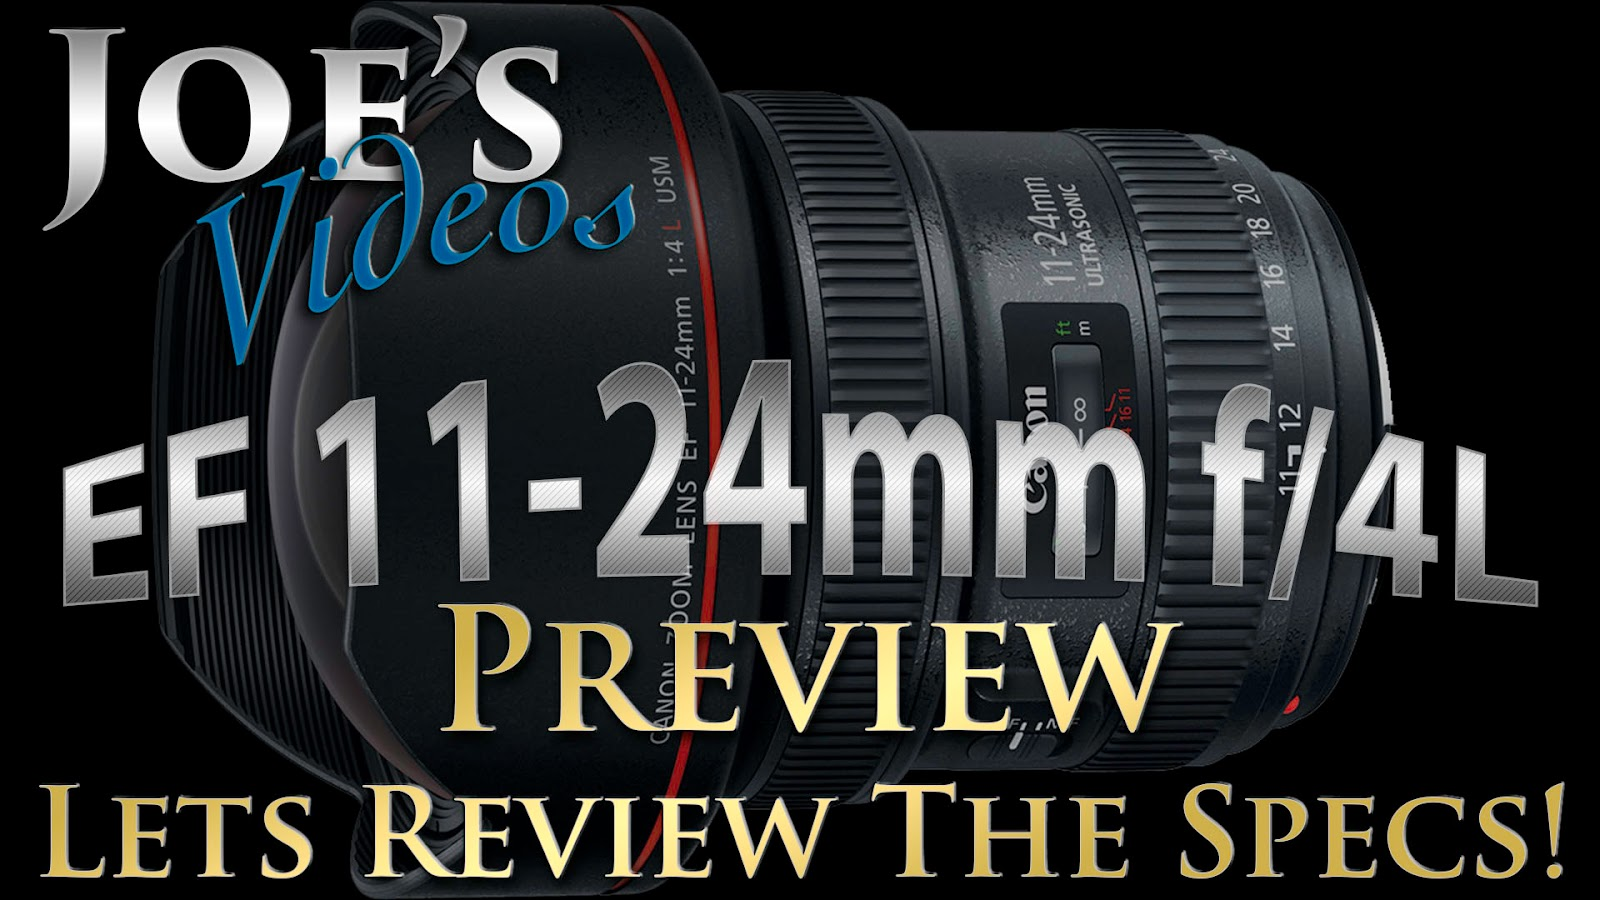 Canon EF 11-24mm f/4L Preview, Lets Review The Specs | Joe's Videos